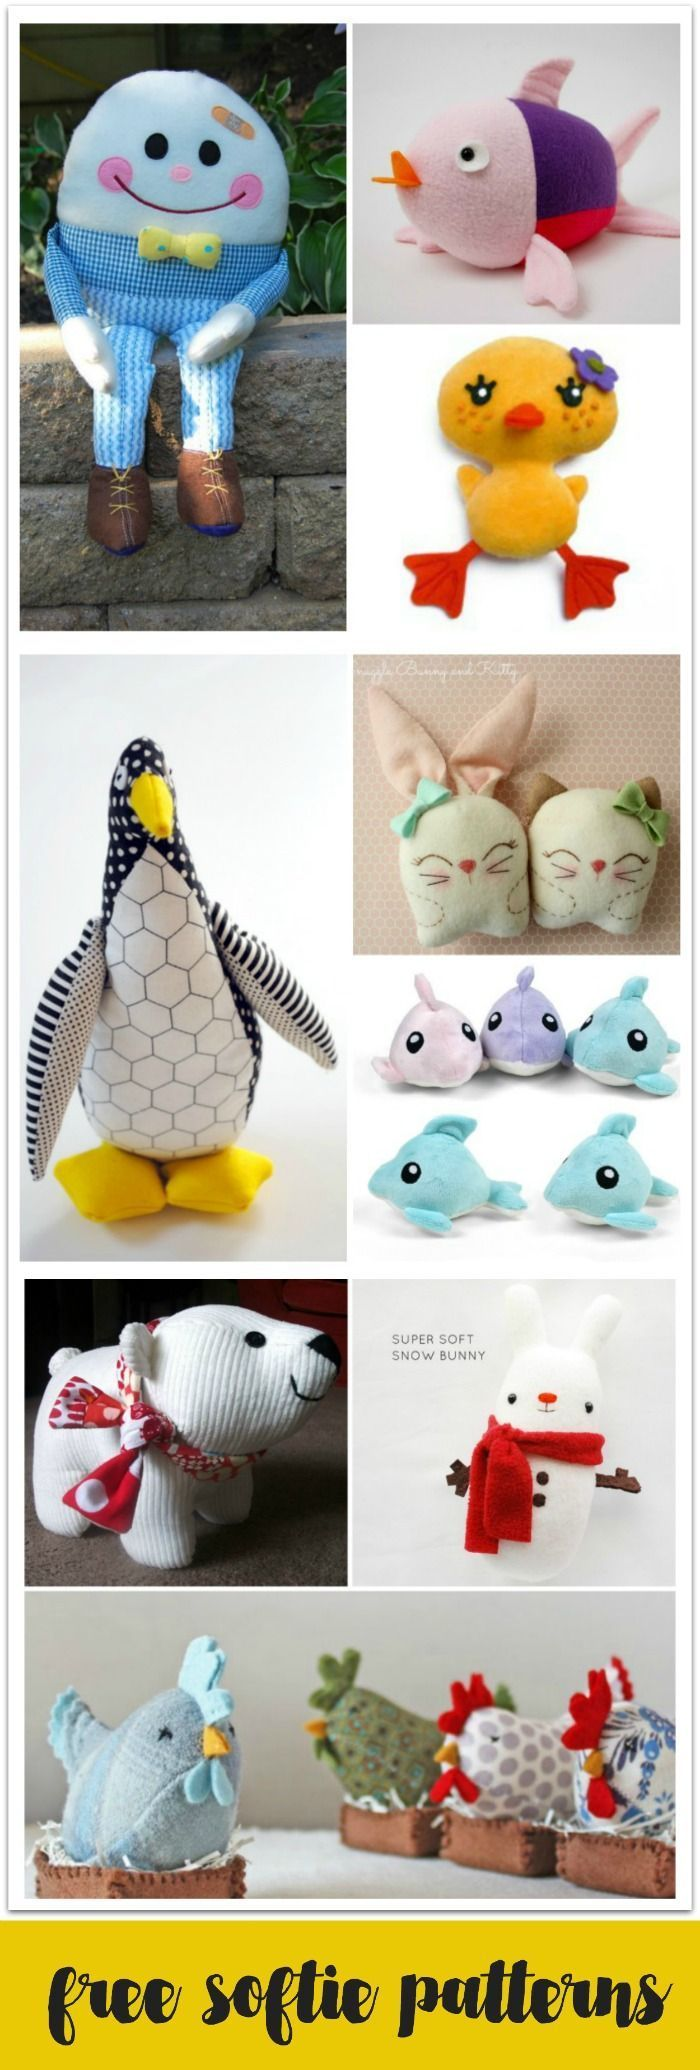 10 Free Softie Patterns to Sew for Sew-a-Softie Day | Schnittmuster ...